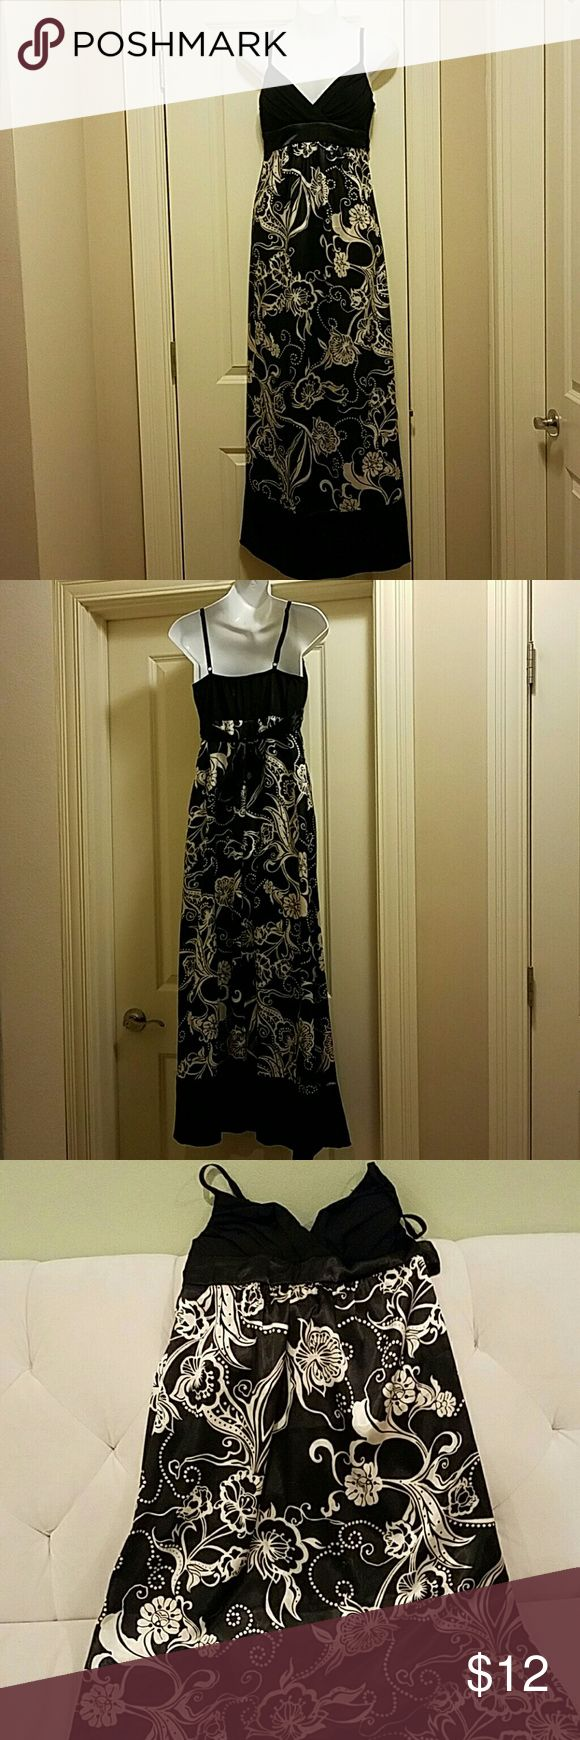 Silky black and white floral maxi dress Black and grey floral maxi dress.  Tie in the back and bra cups in the front for support. Only worn once for a wedding. The perfect wedding guest dress! Trixxi Dresses Maxi